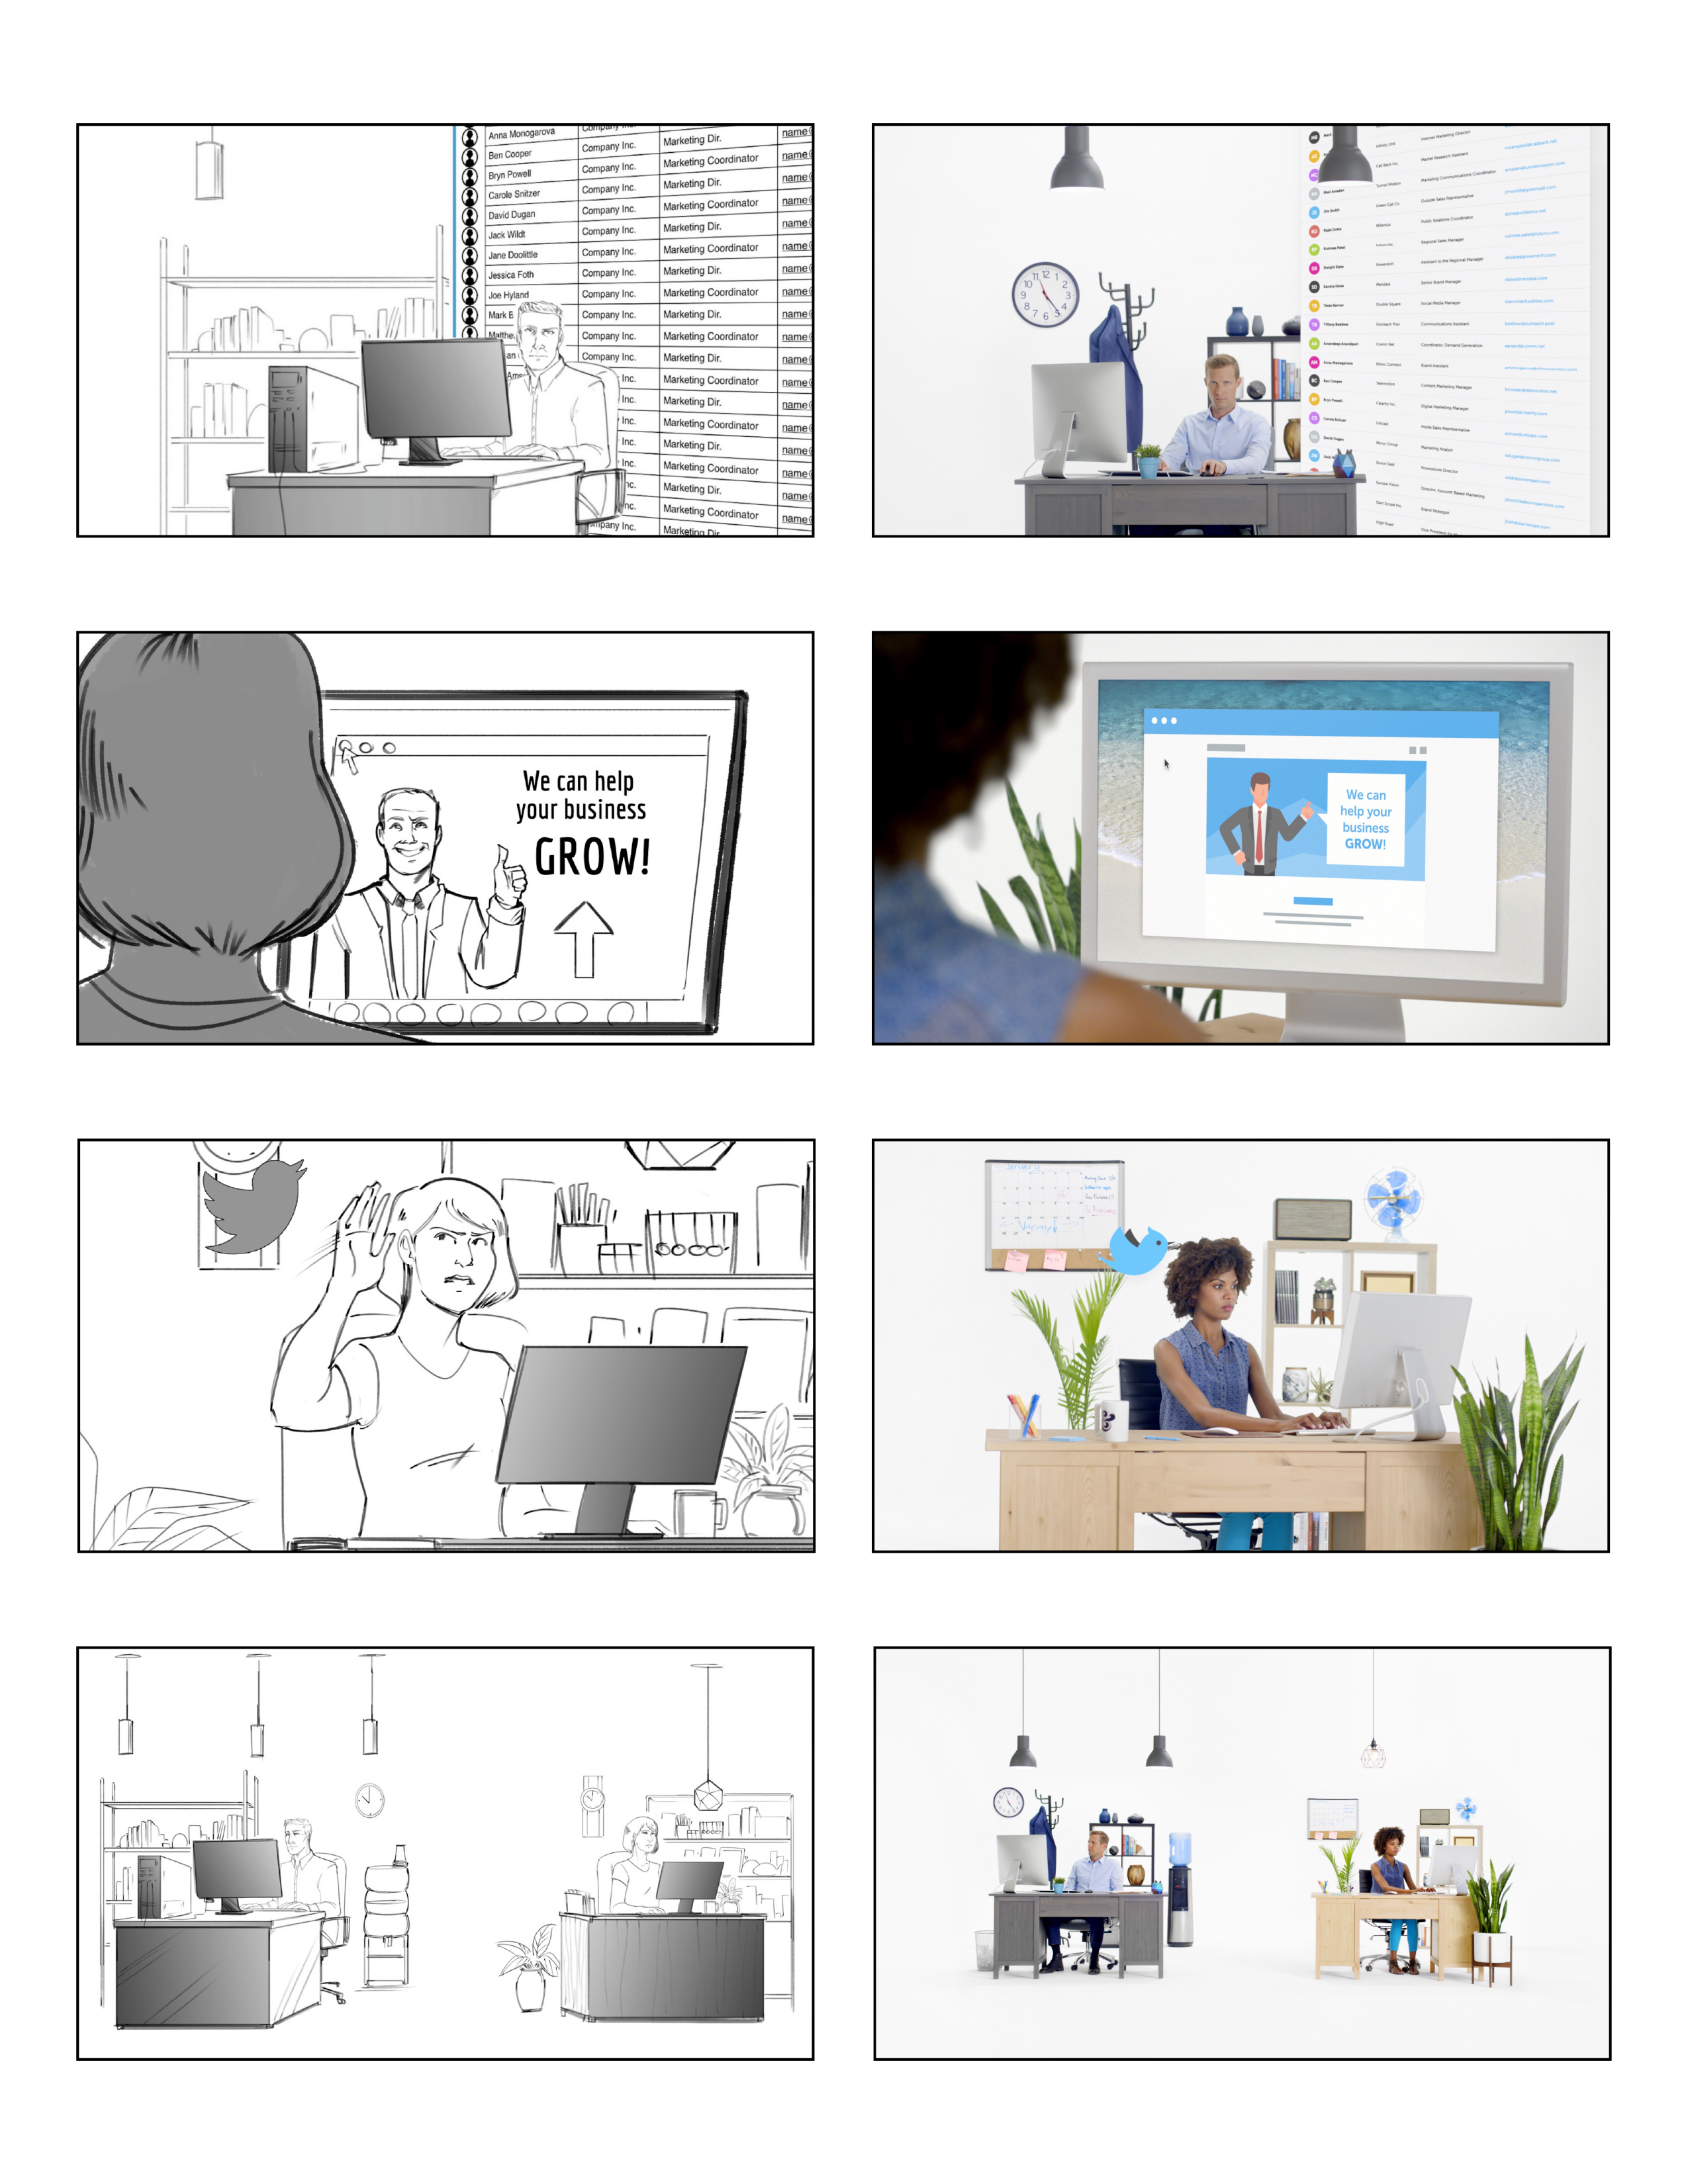 On24 Storyboard Comparison